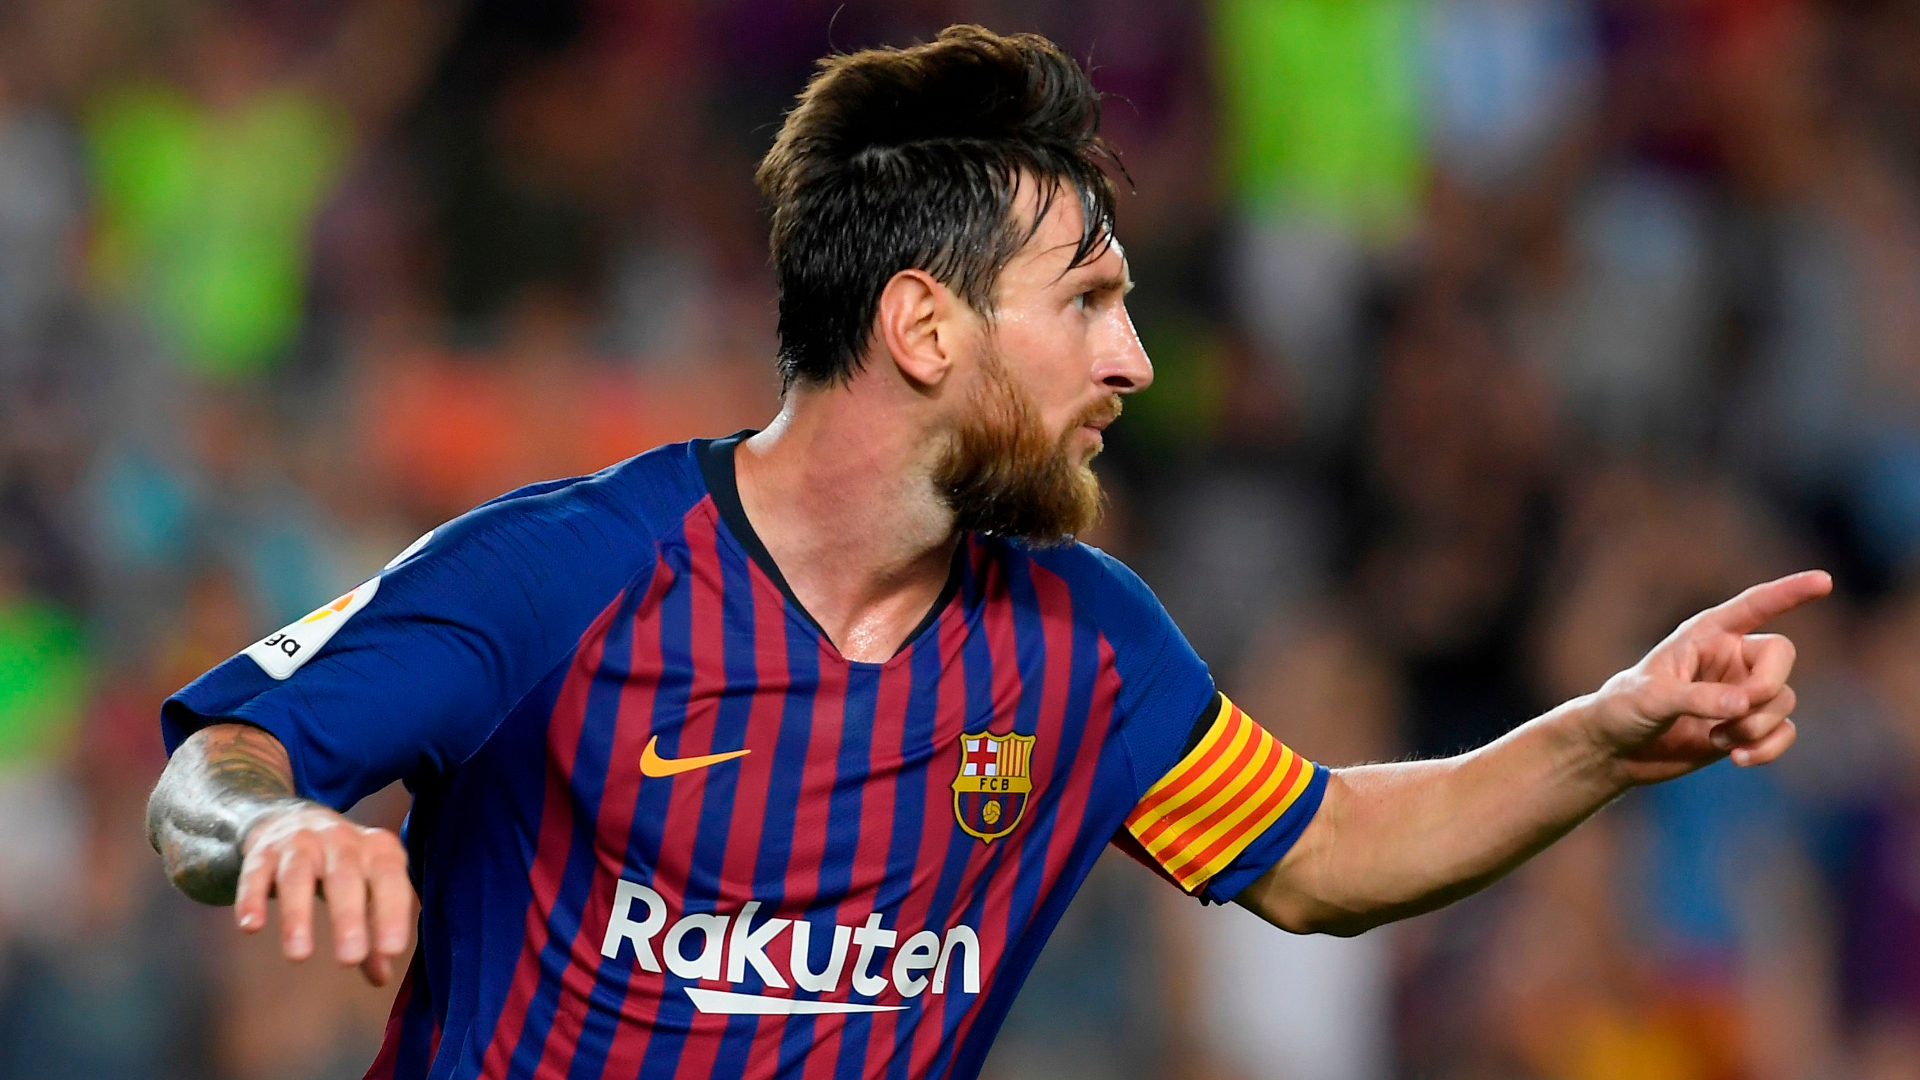 Astonishing Lionel Messi Haus The Best Of Barcelona Alaves